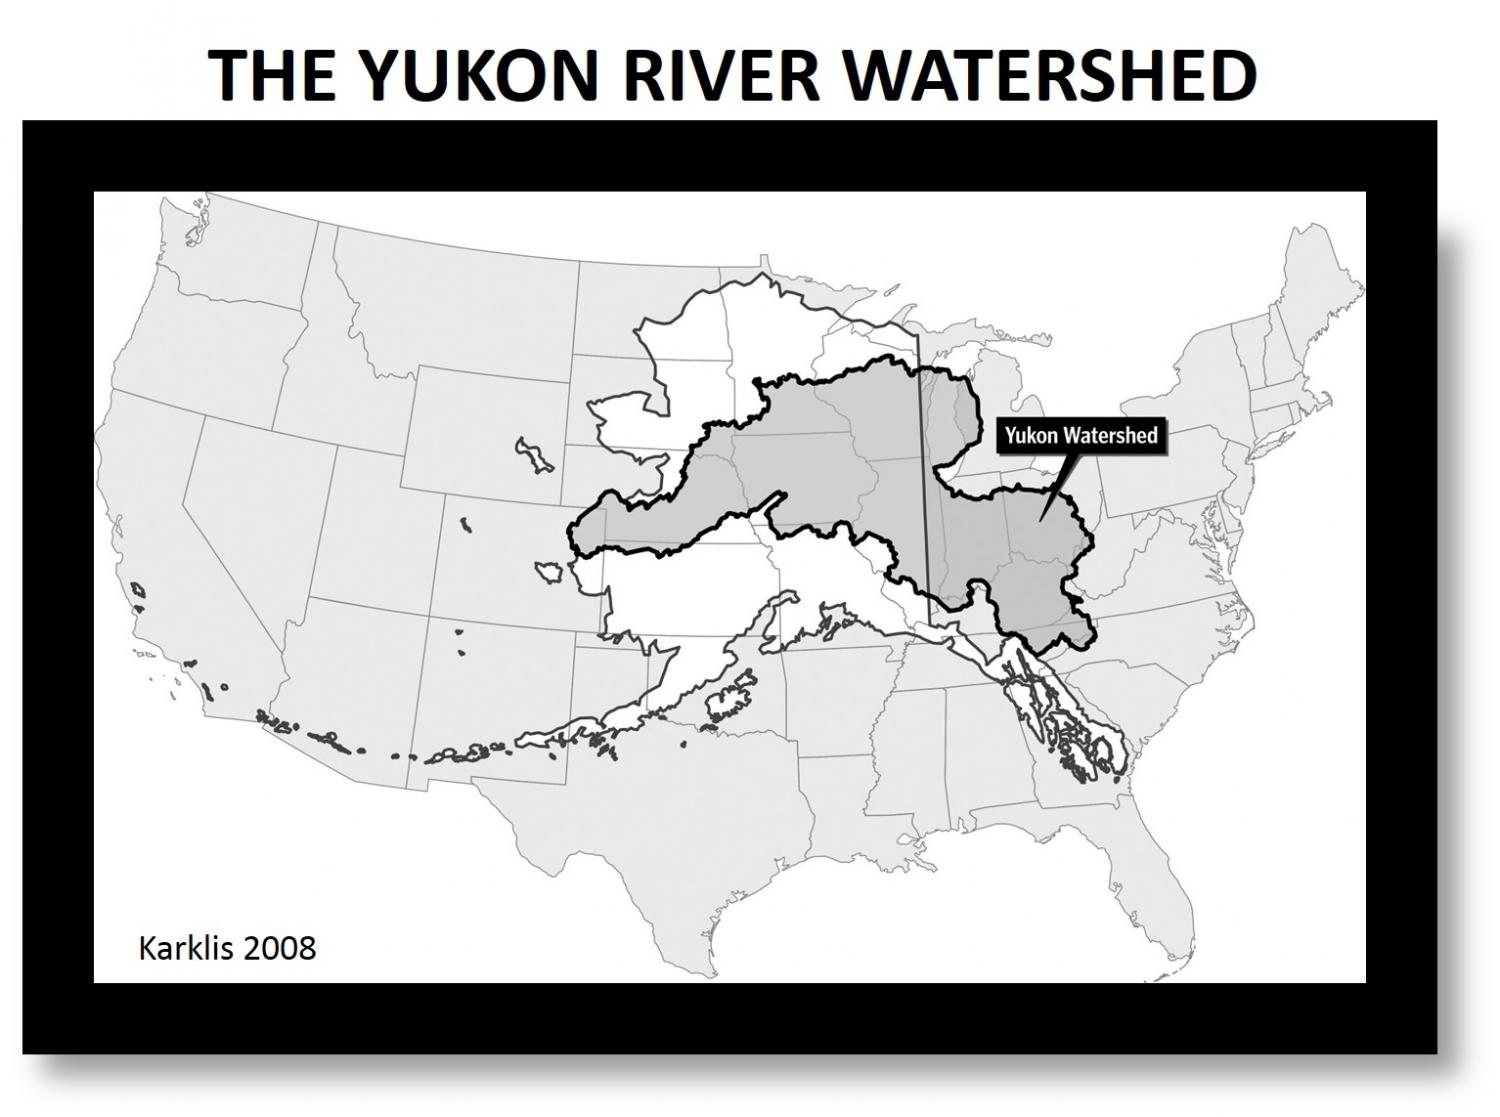 Permafrost loss changes yukon river chemistry with global implications the yukon river watershed is immense as evidenced here when it is superimposed over a map of the continental us credit laris karklis gumiabroncs Image collections